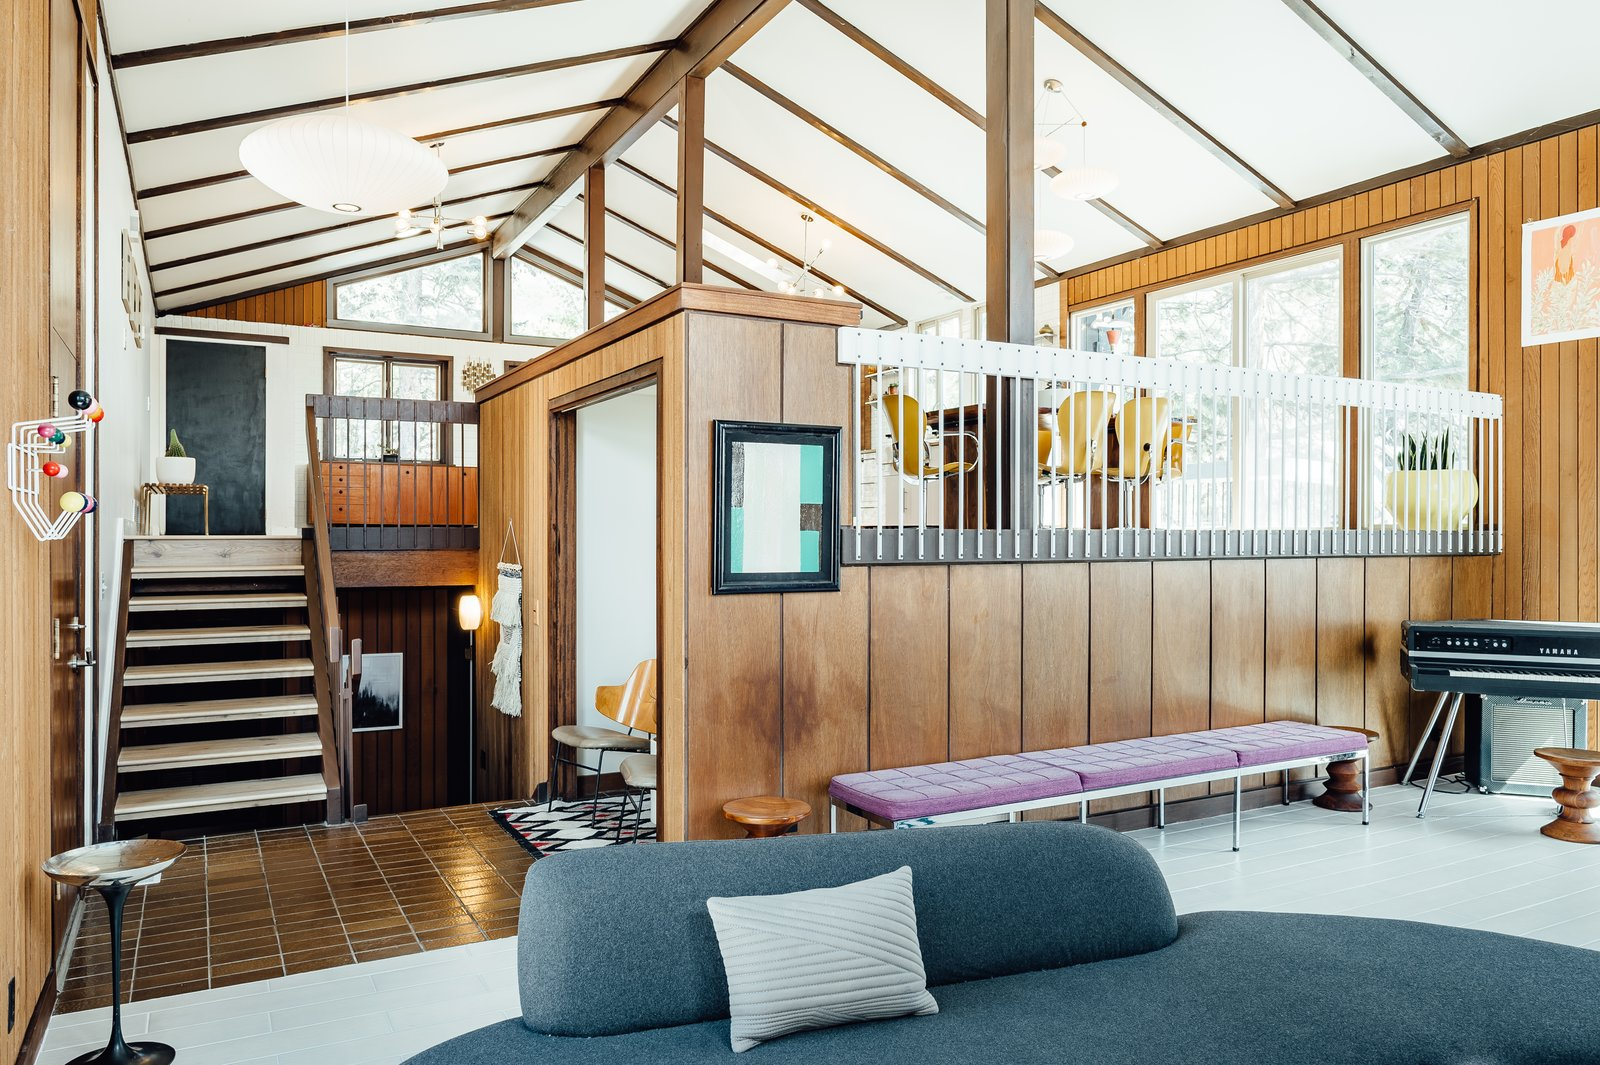 Living Room, Bench, Pendant Lighting, Porcelain Tile Floor, and Sofa The 4,312-square-foot home is spread over multiple levels.  Photo 6 of 12 in A Midcentury Gem in Utah Is Listed For $550K